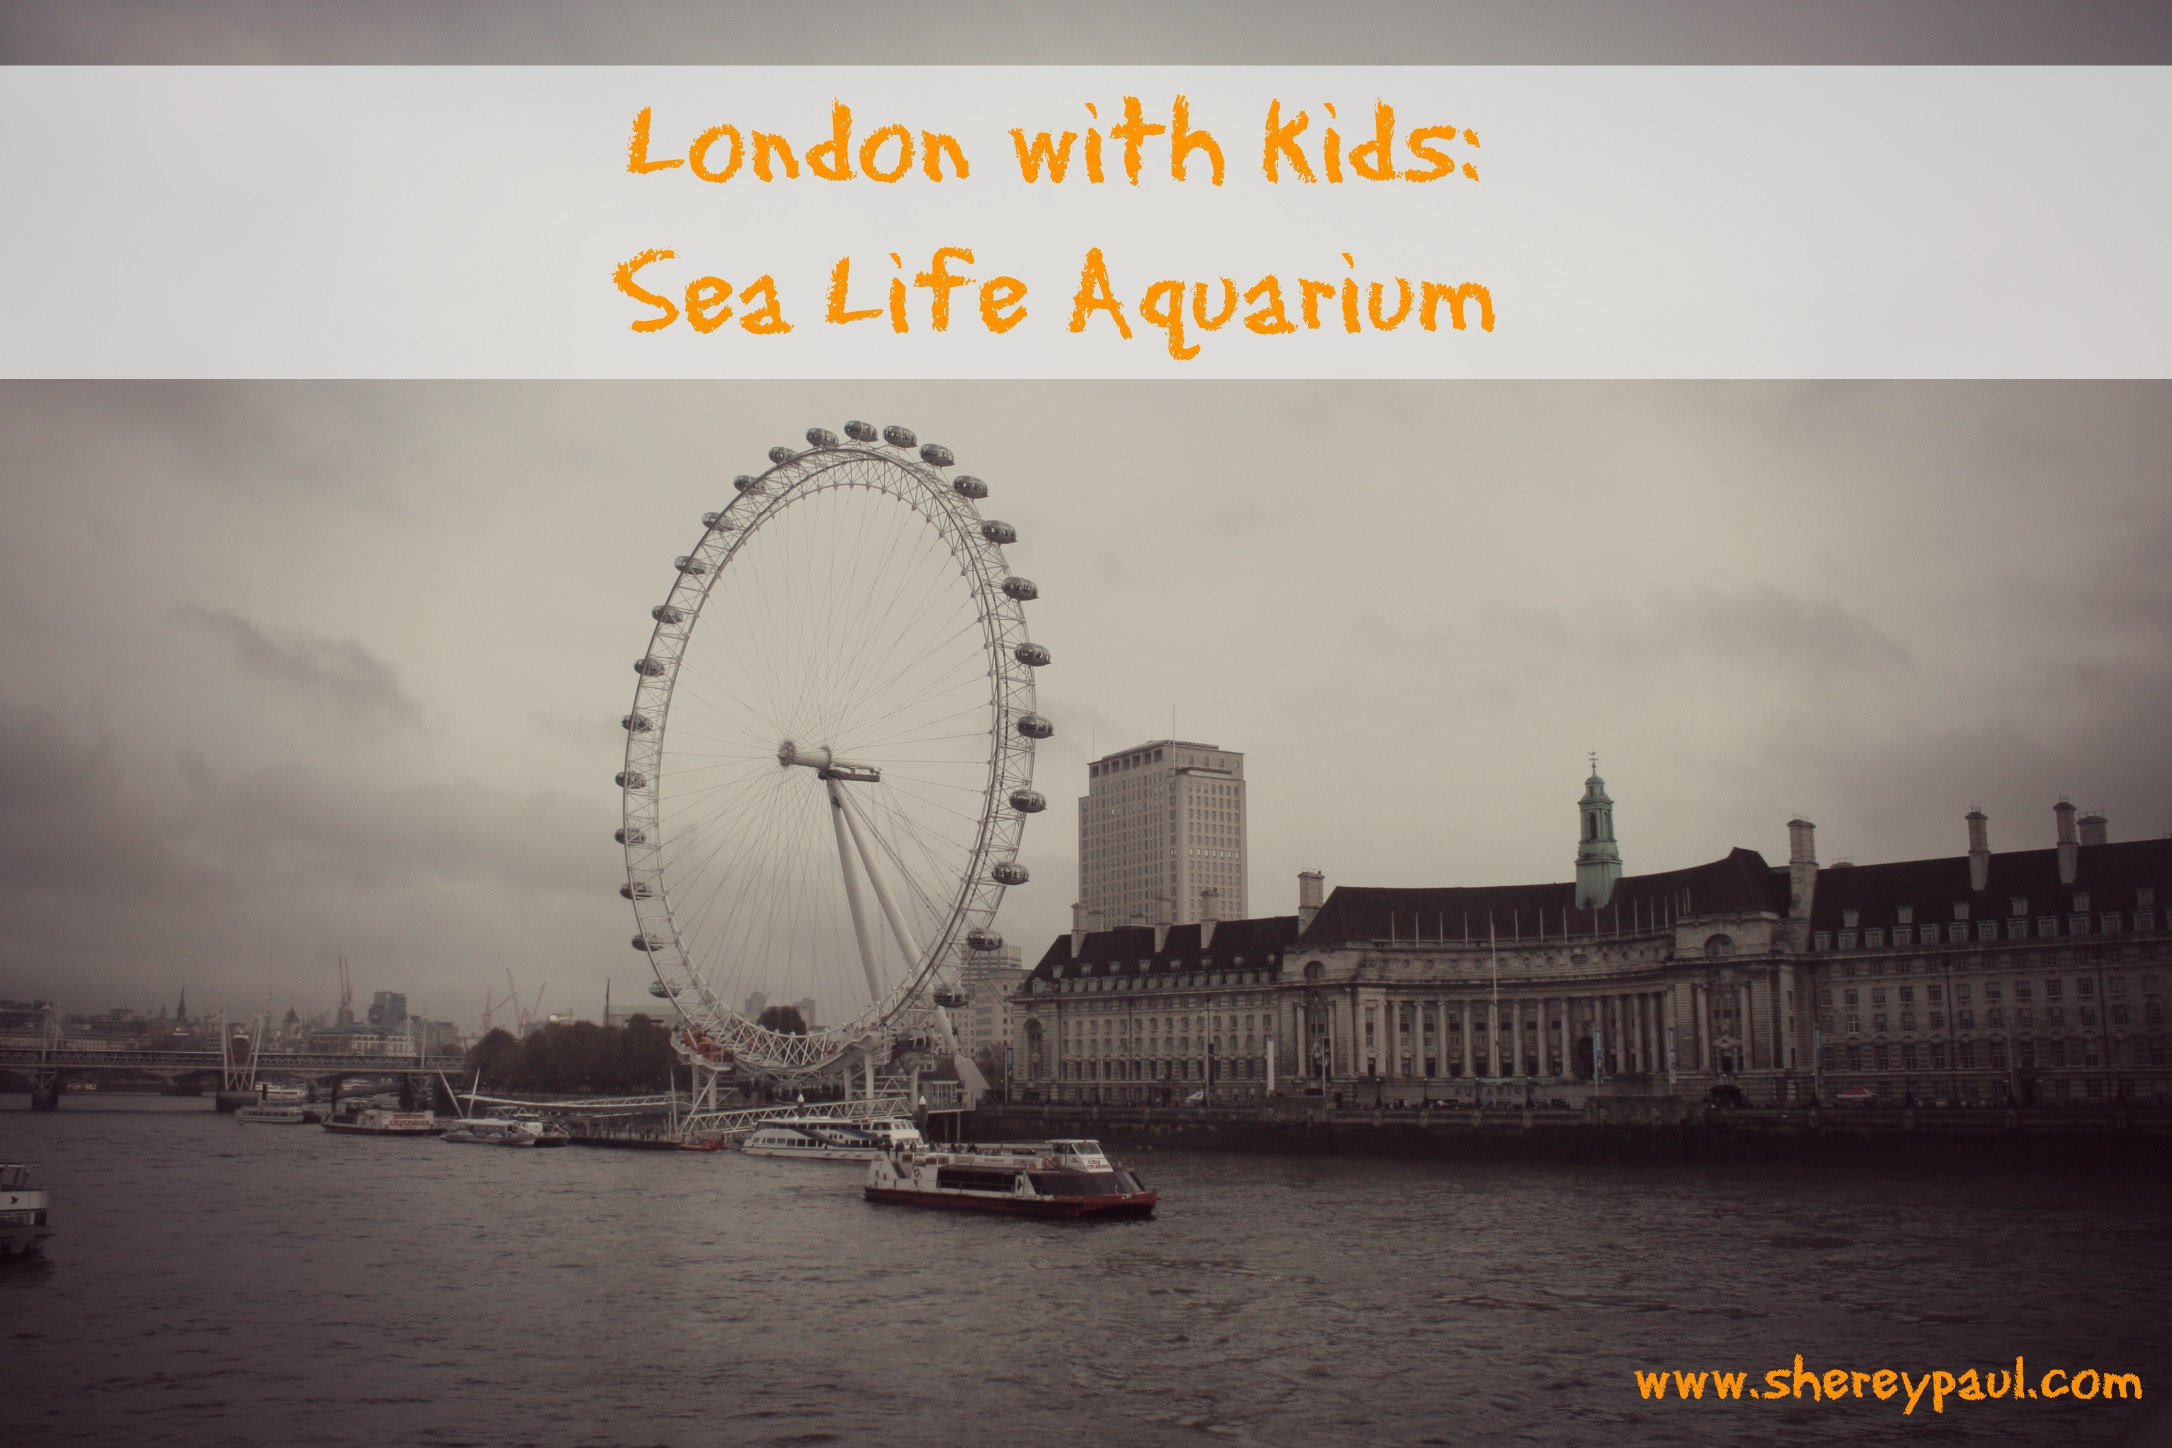 London with kids: Sea life Aquarium